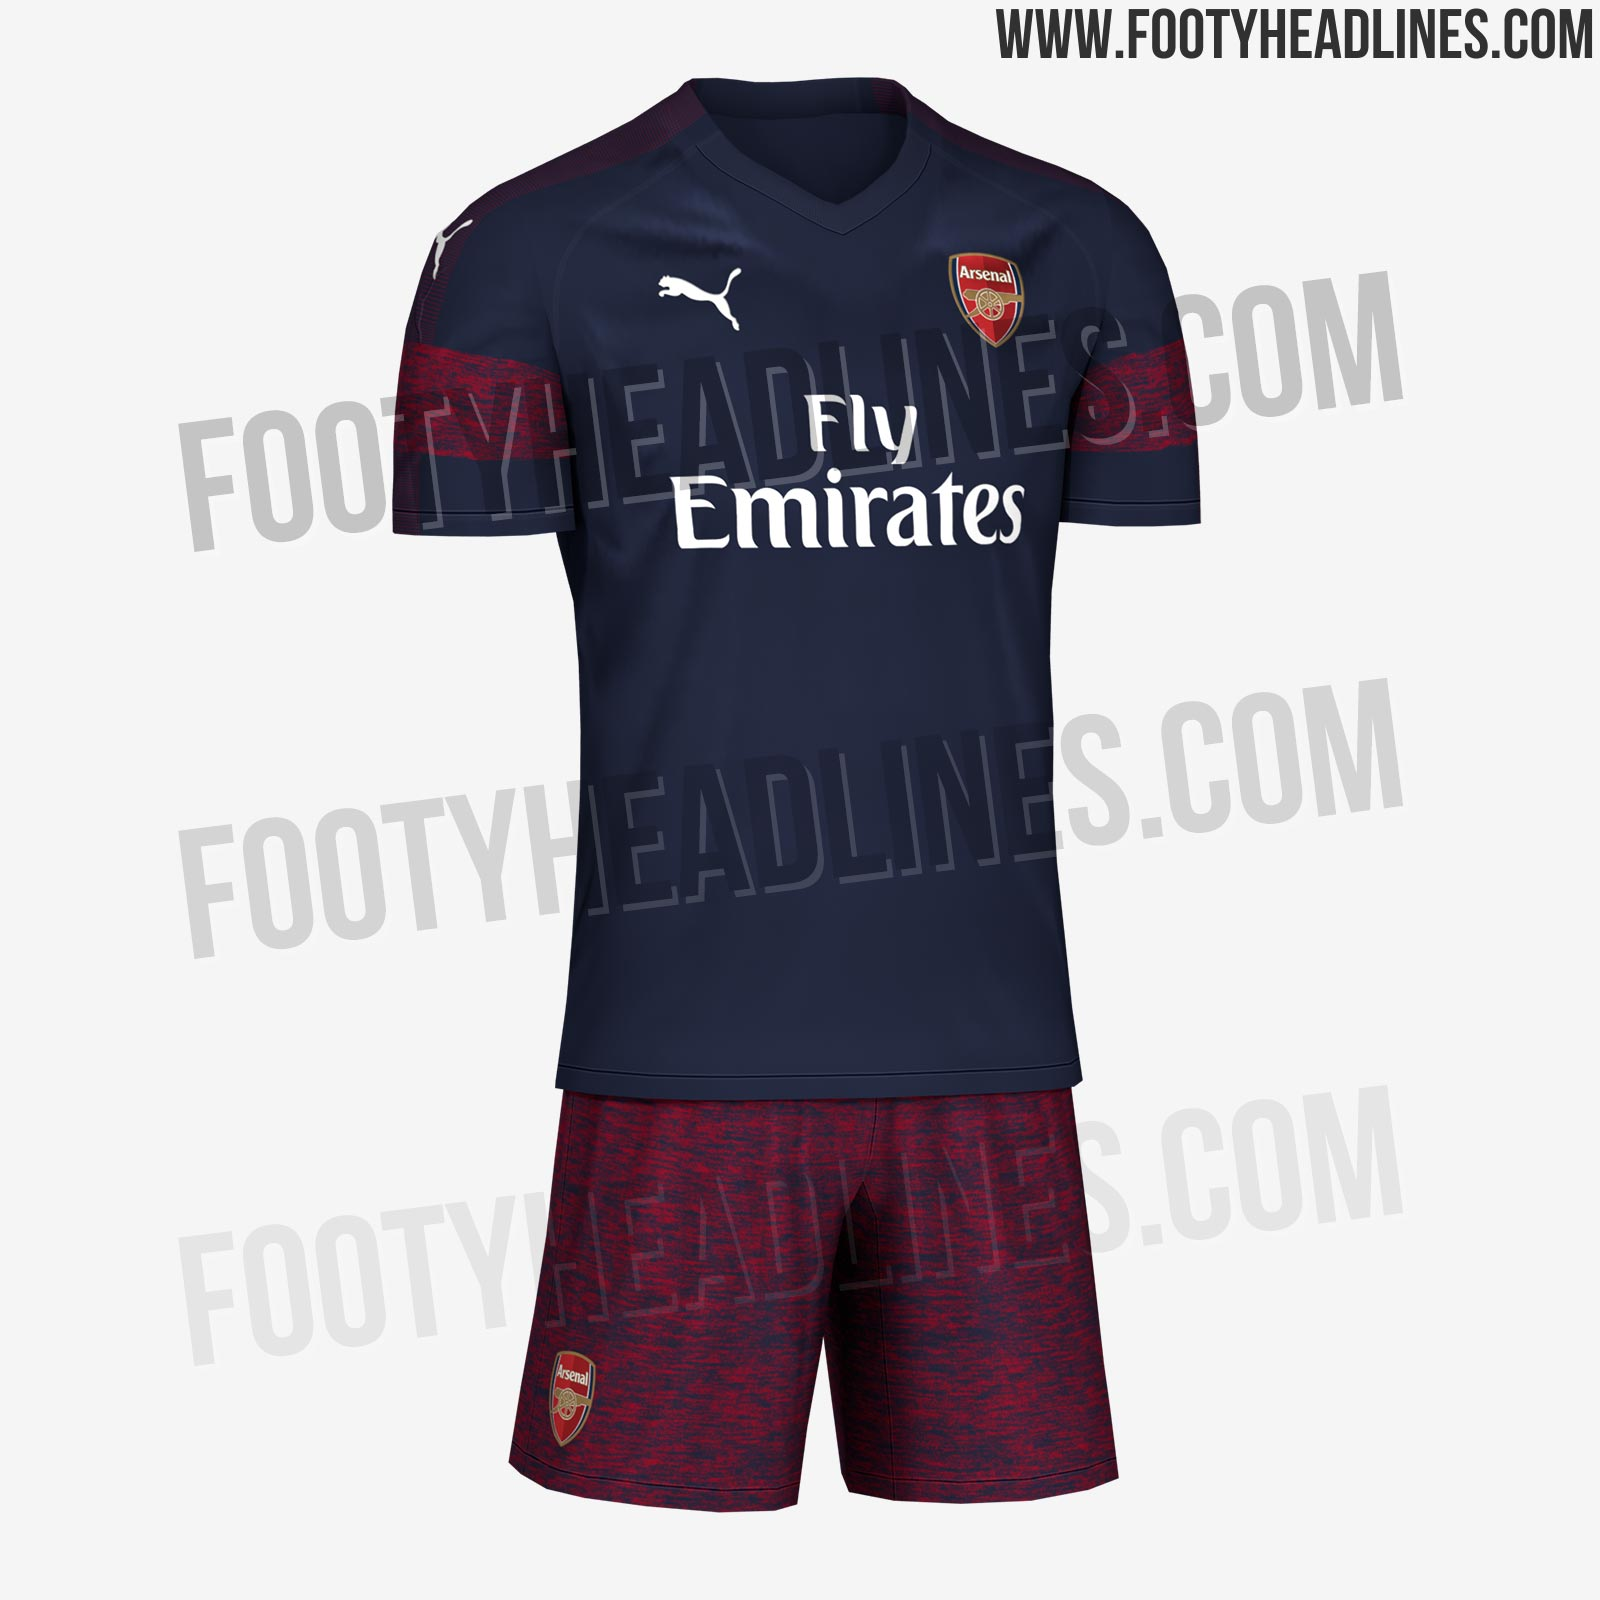 arsenal-18-19-away-kit-crazy-shorts-2.jpg